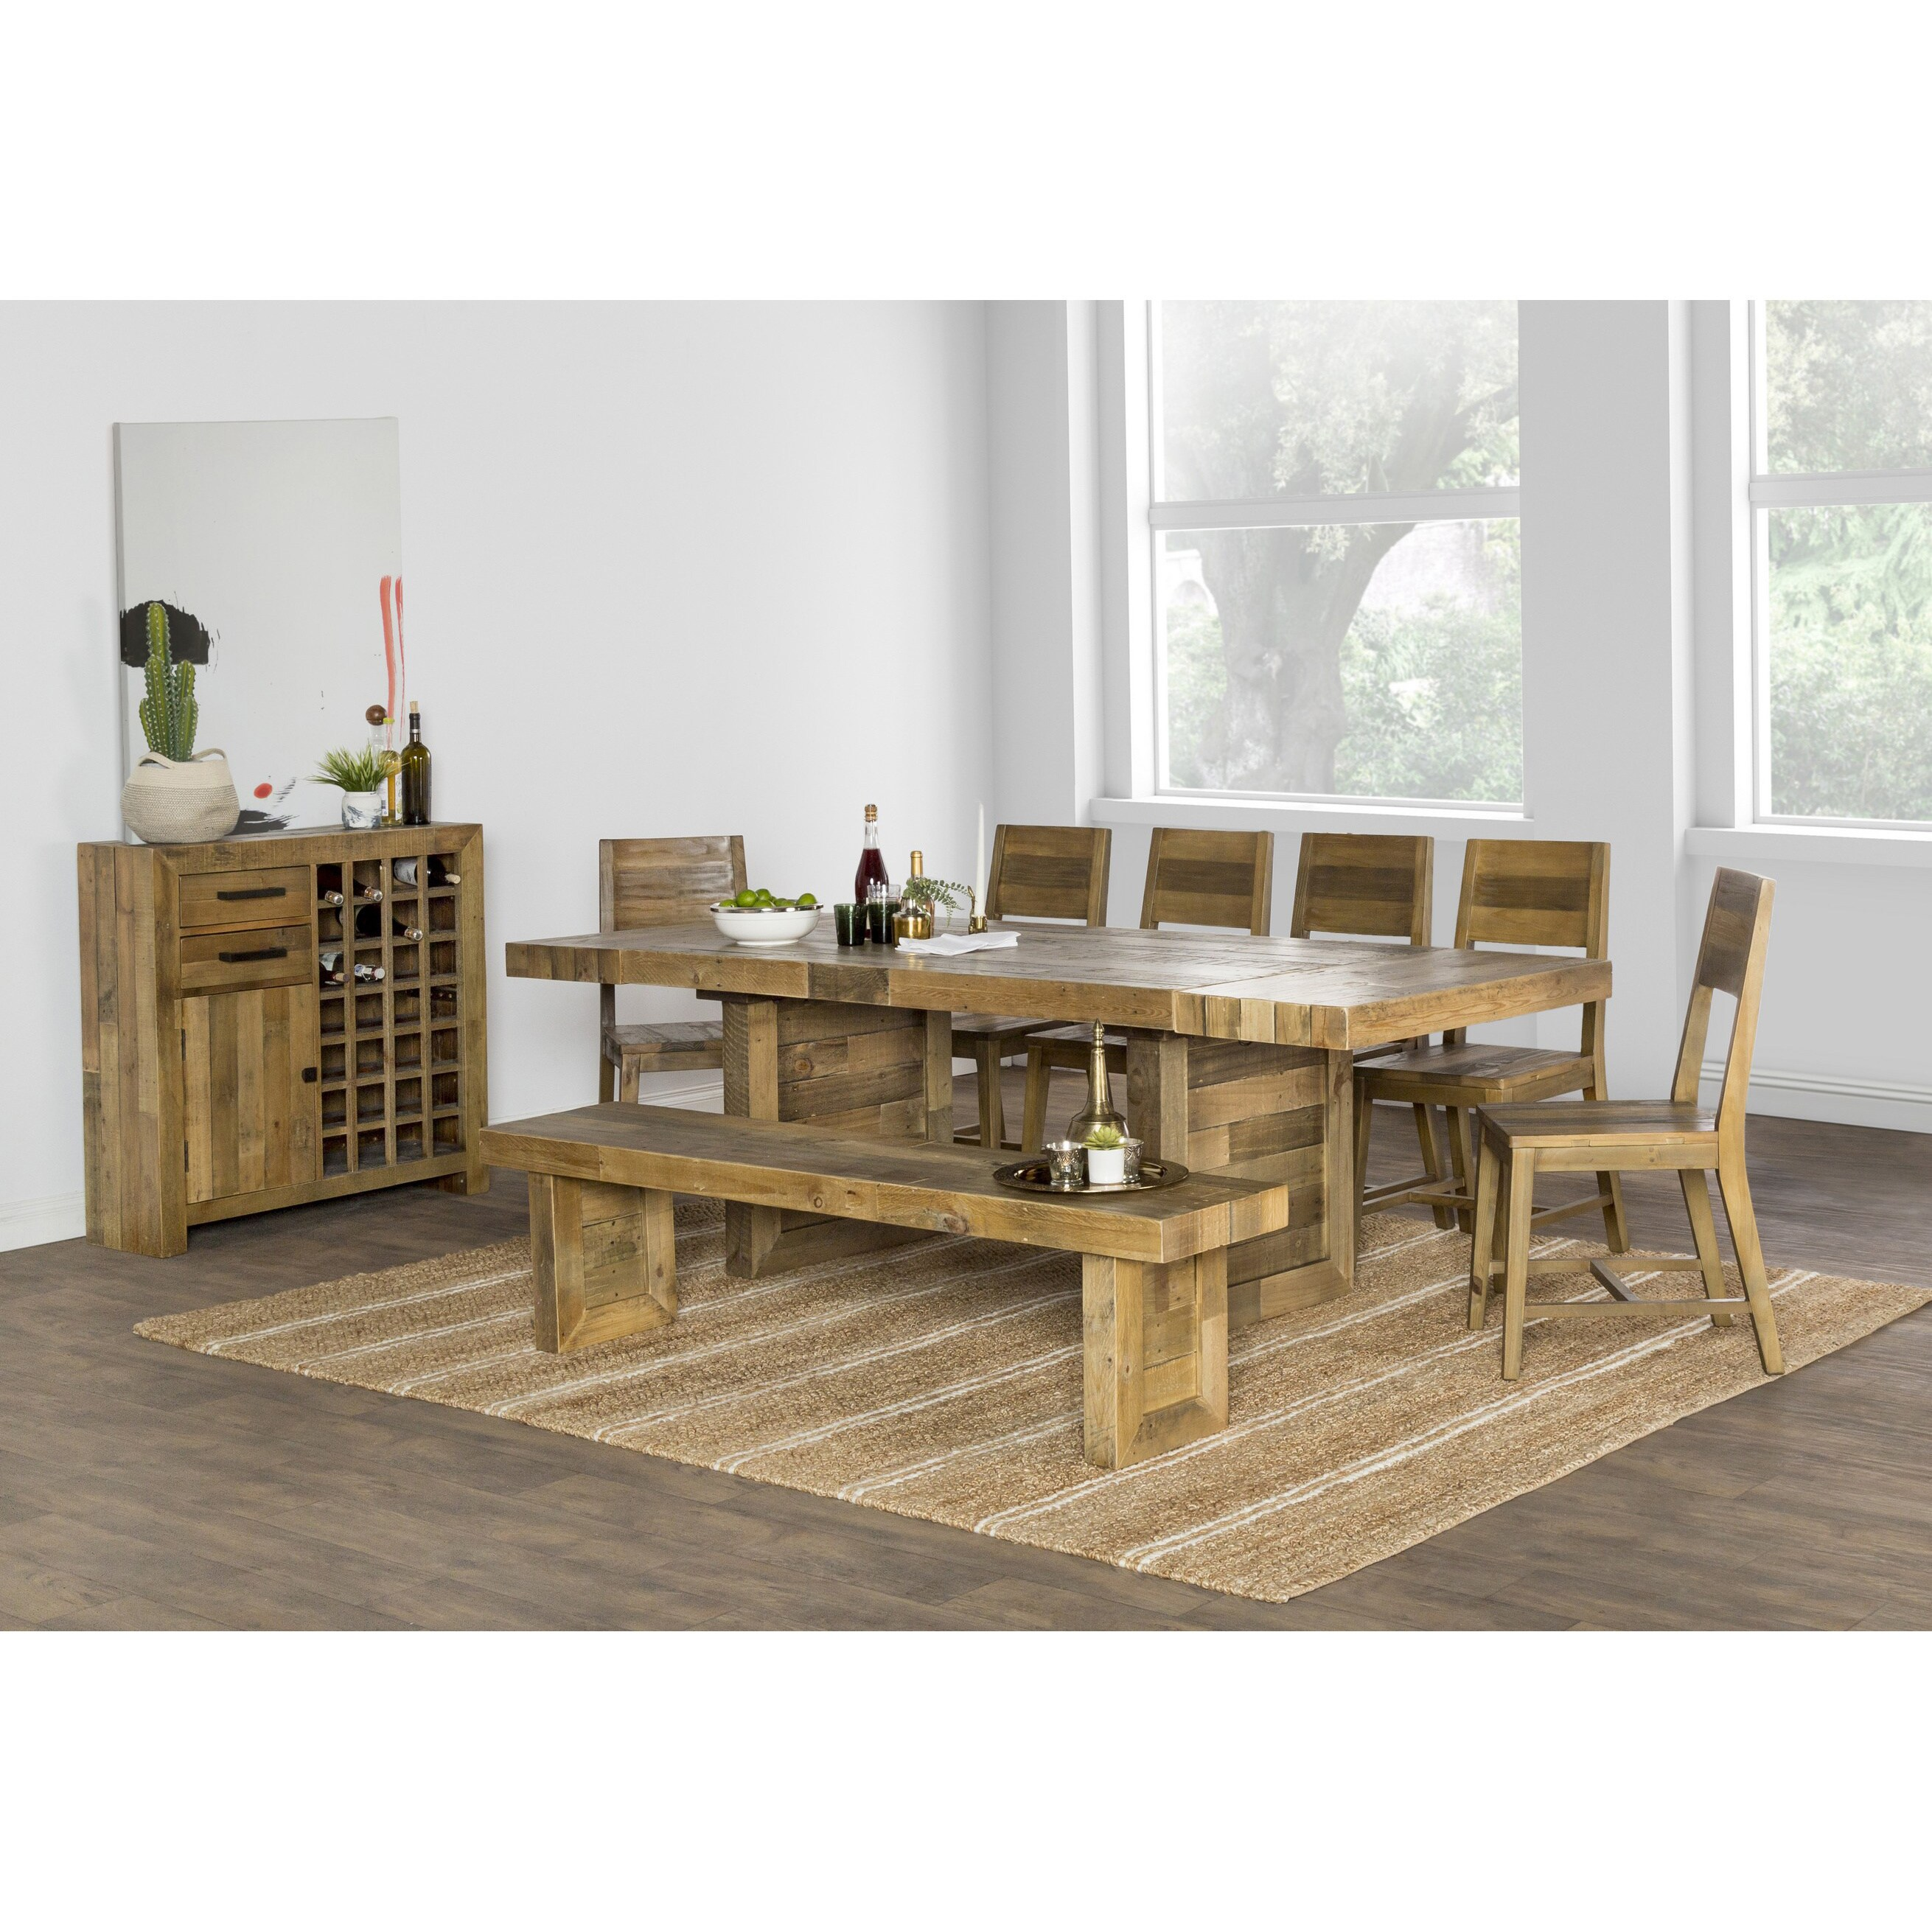 Extending Dining Table The Gray Barn Fairview Reclaimed Wood Extending Dining Table Natural Multi Tone